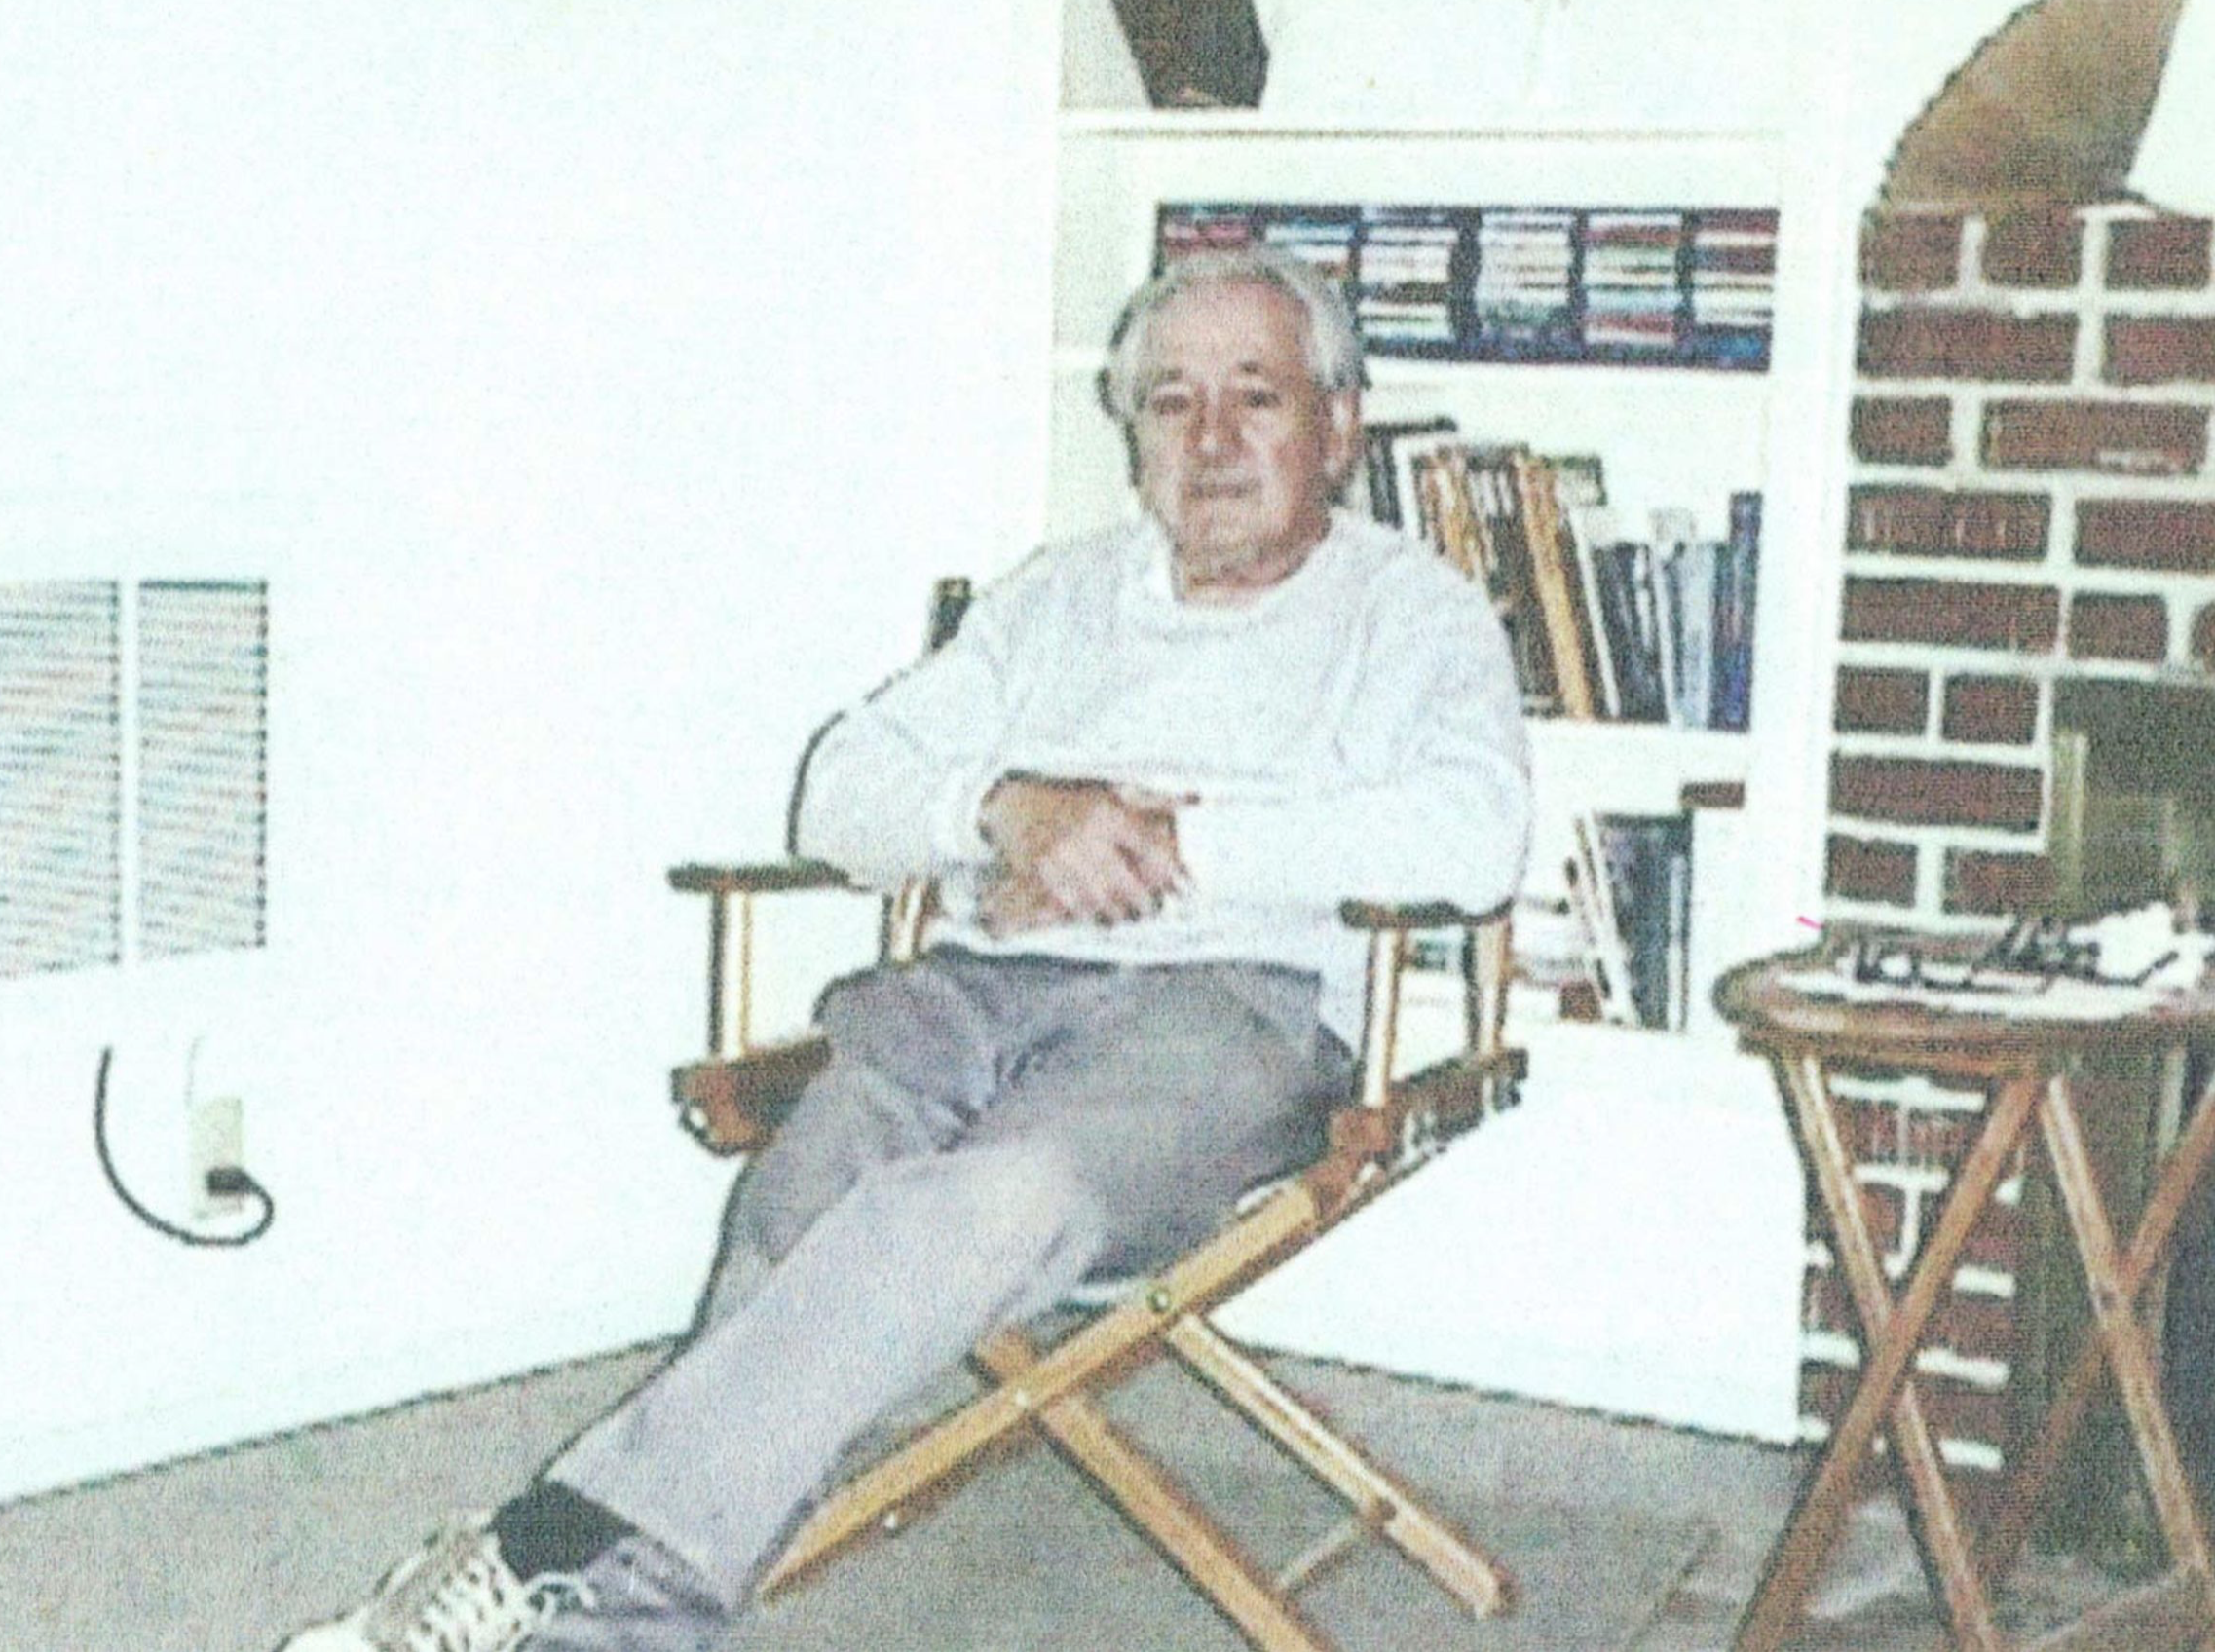 Eugene Brown at his home. SOURCE: TEHAMA COUNTY PUBLIC GUARDIAN